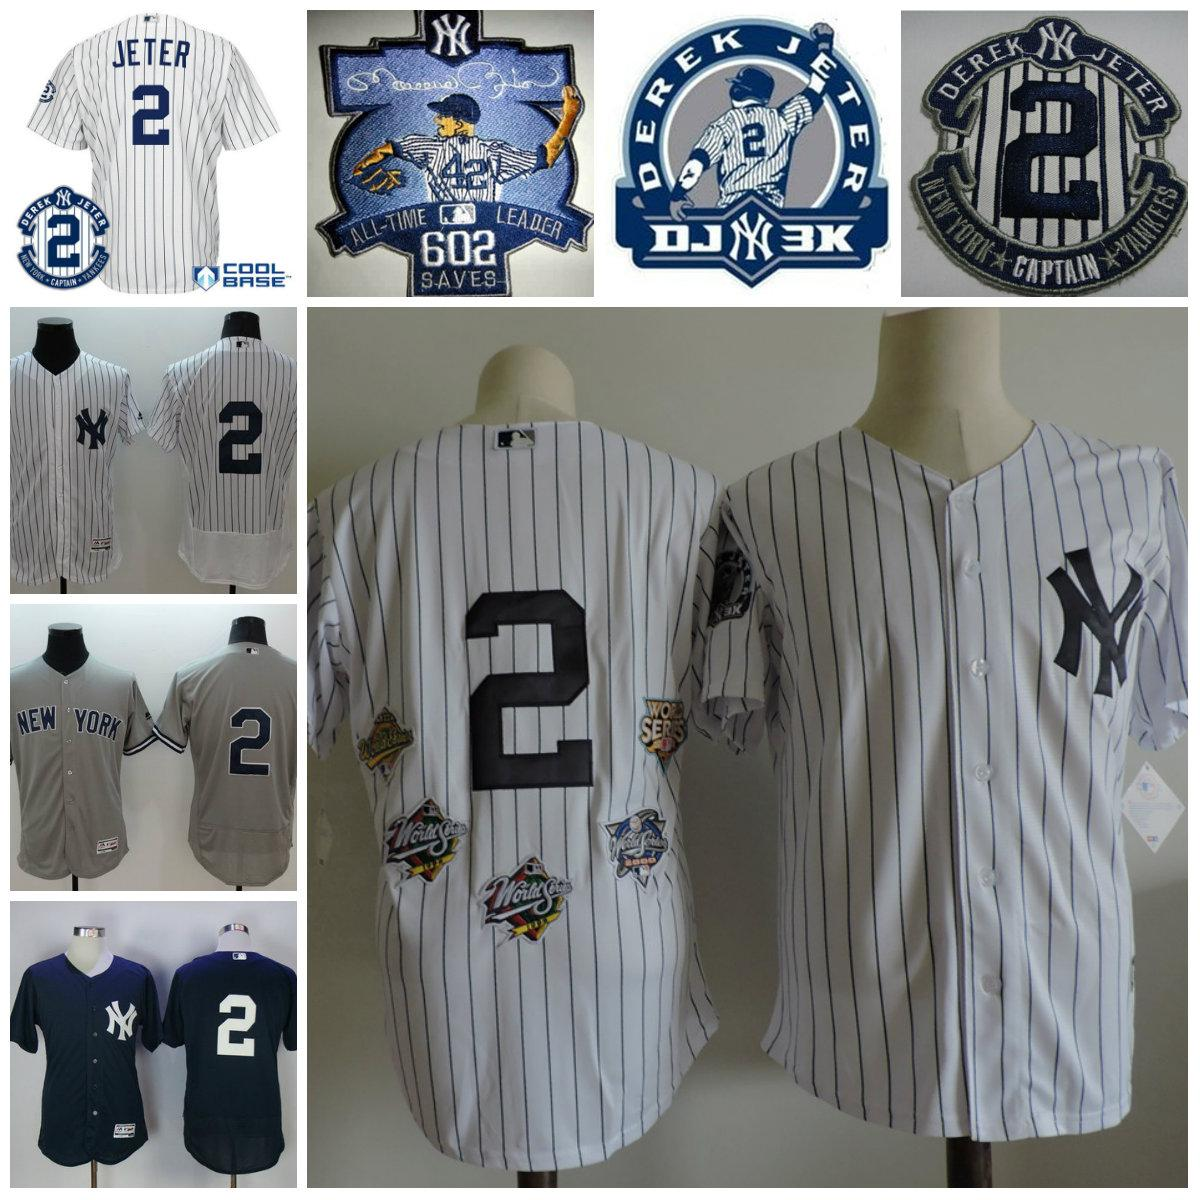 ... czech 2017 new york yankees 2 derek jeter jersey retirement captain  patch white 5x baseball world 5b2608afb